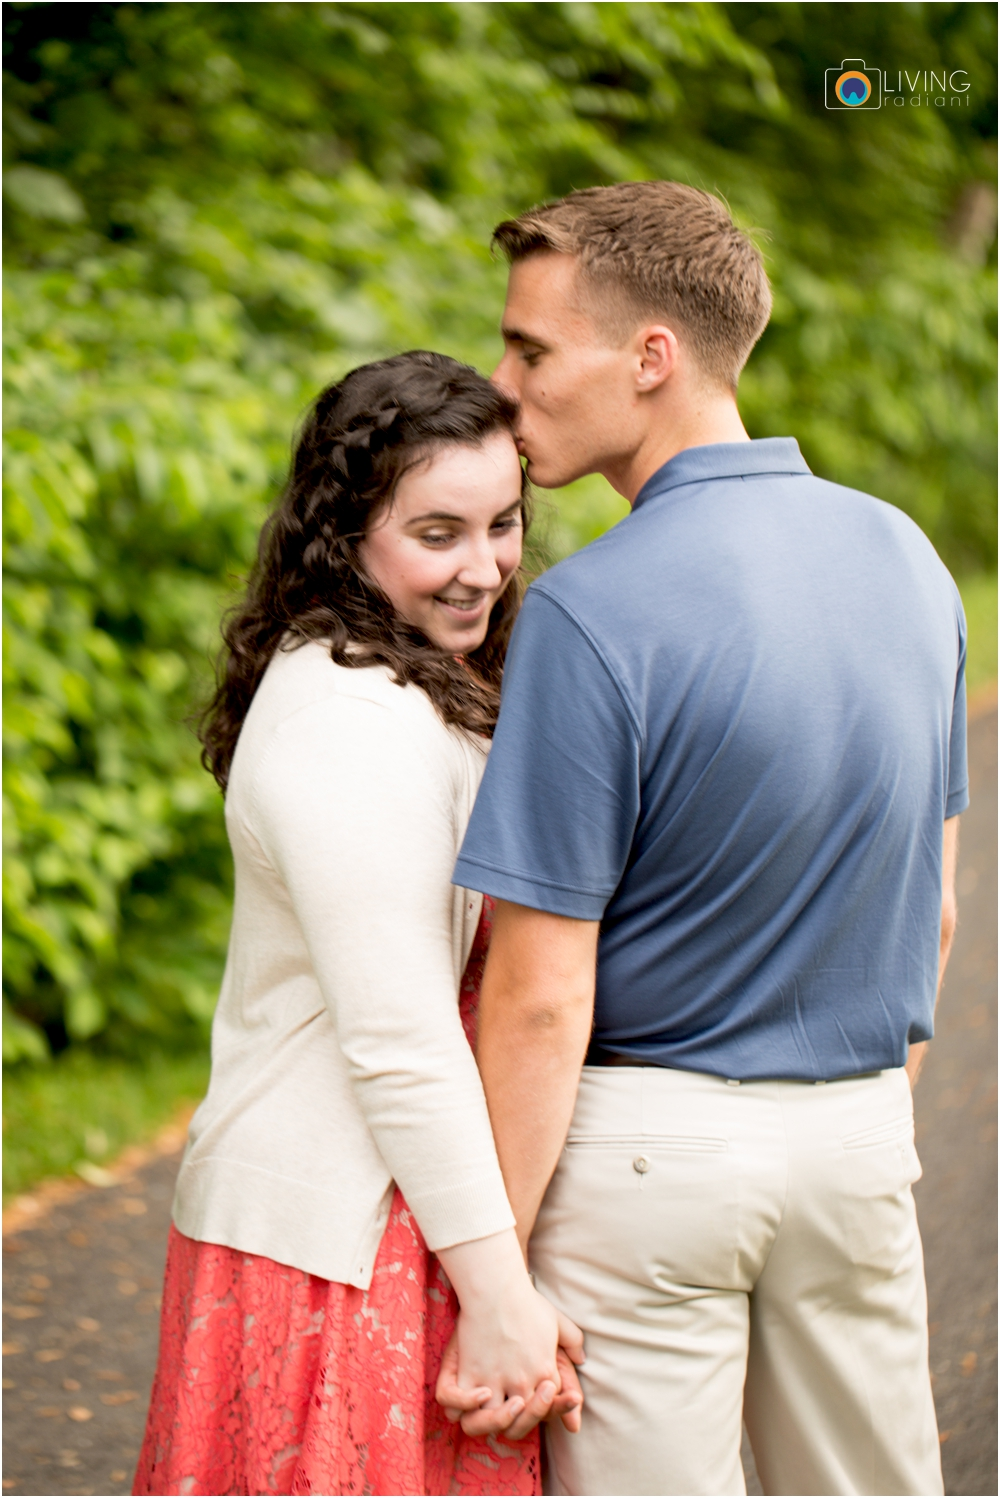 melissa-chris-brookside-gardens-engagement-session-outdoor-gardens-living-radiant-photography-maggie-patrick-nolan_0016.jpg